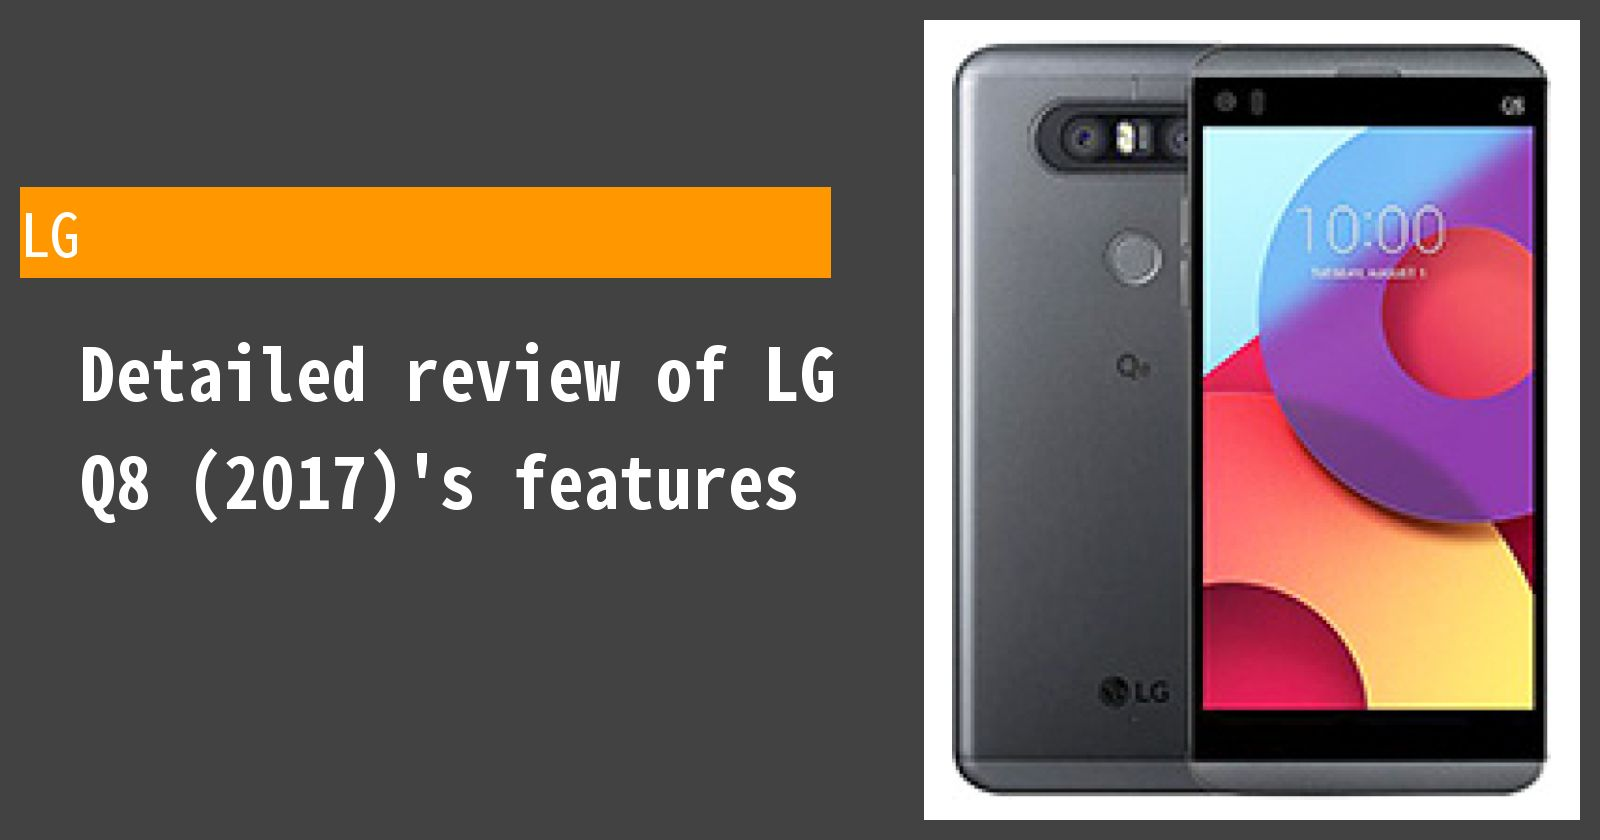 Detailed review of LG Q8 (2017)'s features